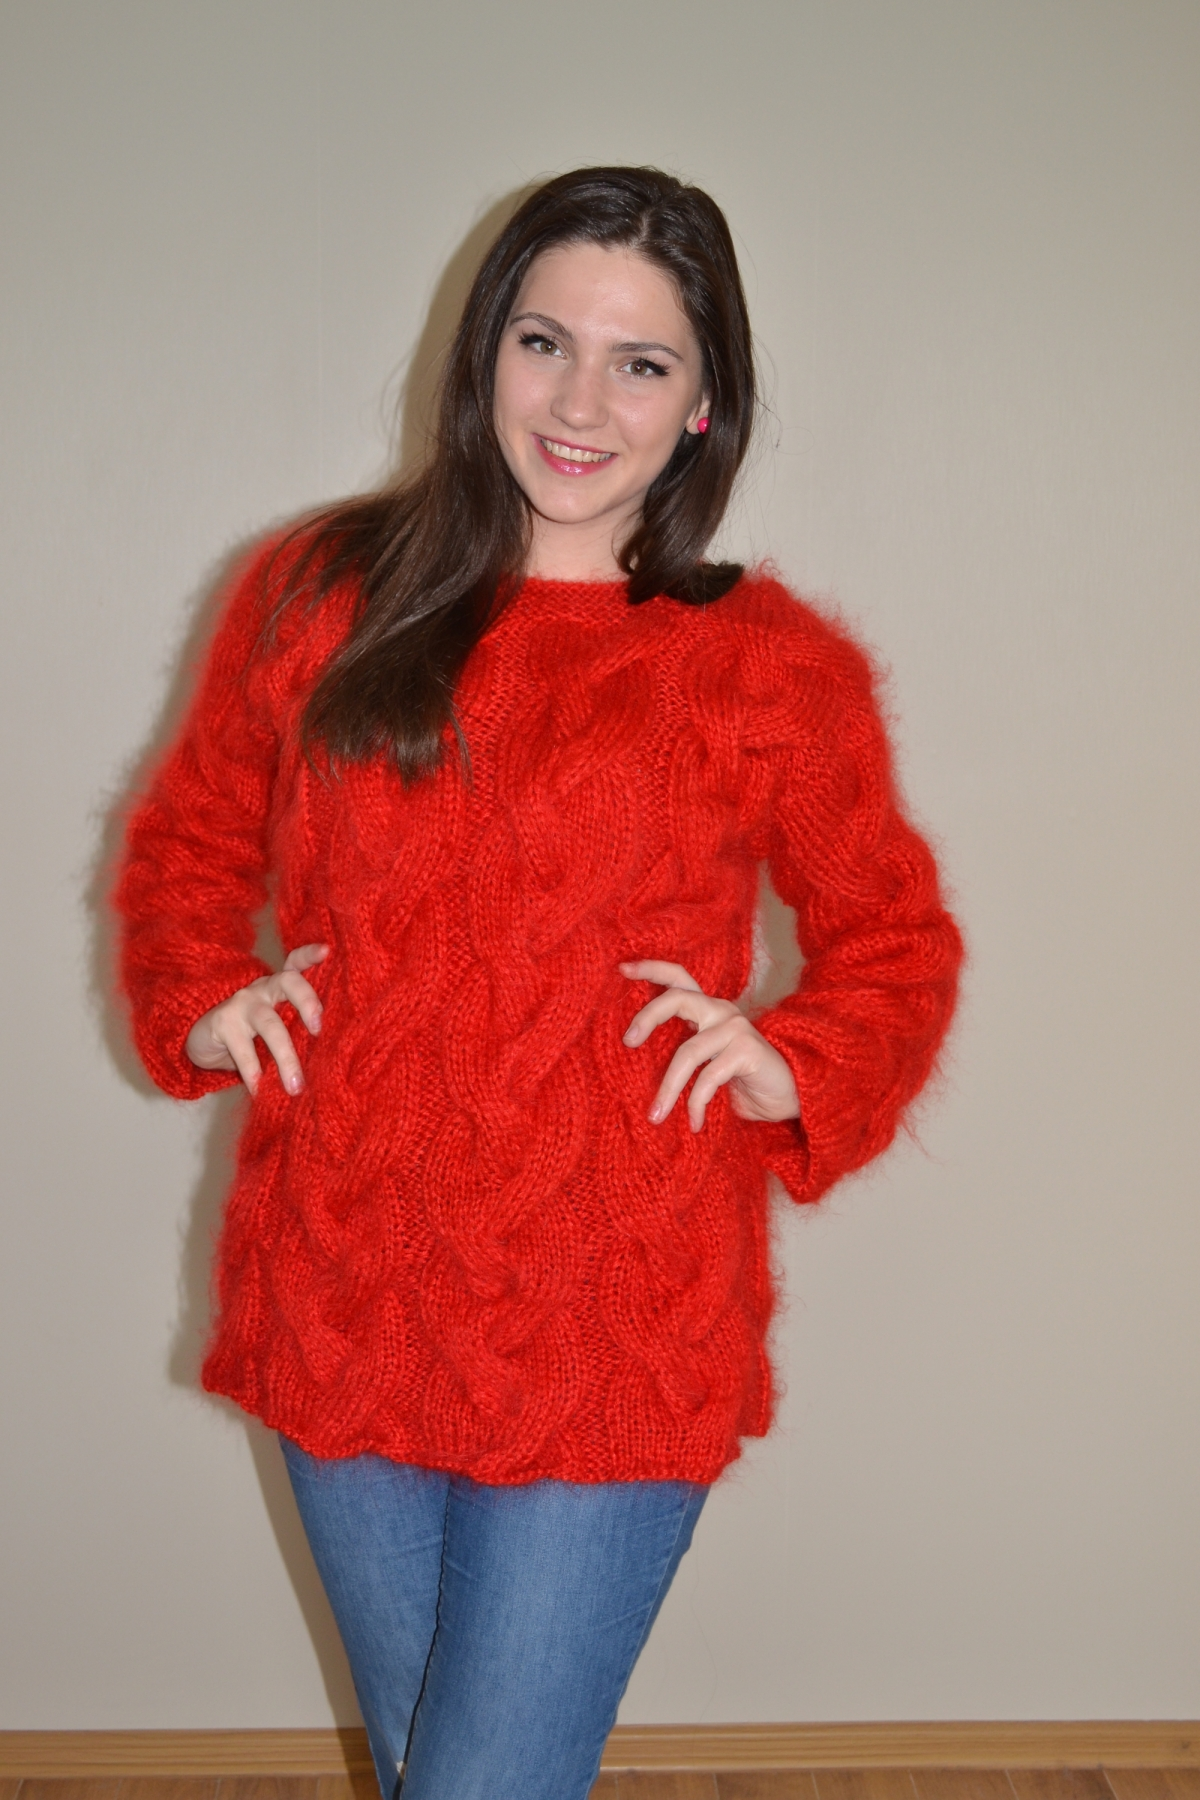 techclux.gq: red mohair sweater. From The Community. Amazon Try Prime All Easel Women's Two-Toned Fuzzy Acrylic Mohair Open Cardigan Sweater With 3/4 Length Sleeves. by Easel. $ - $ $ 39 $ 49 99 Prime. FREE Shipping on eligible orders. Some sizes/colors are Prime eligible.